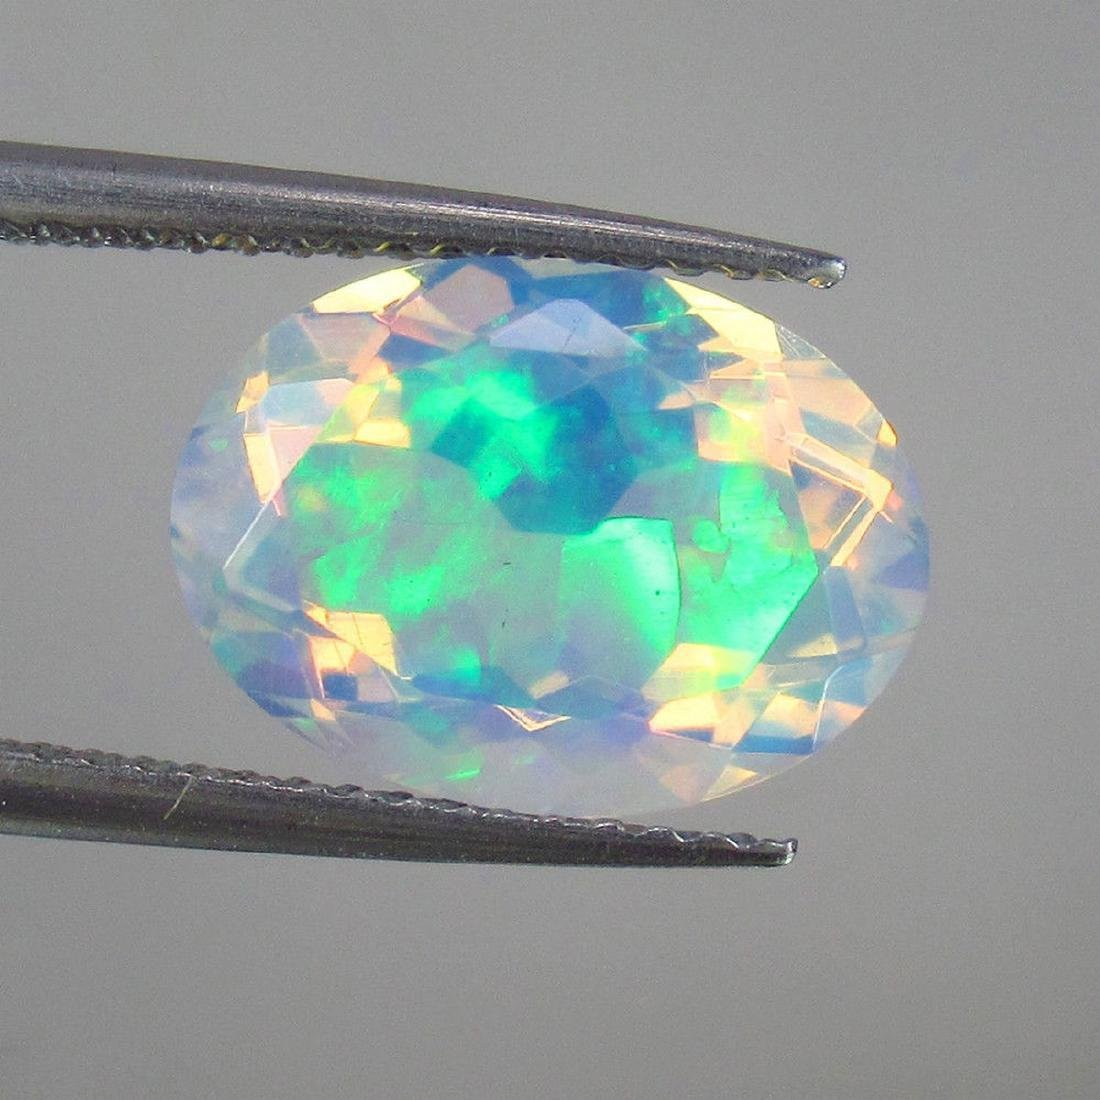 2.93 Carat Loose Ethiopian Welo White Faceted Opal